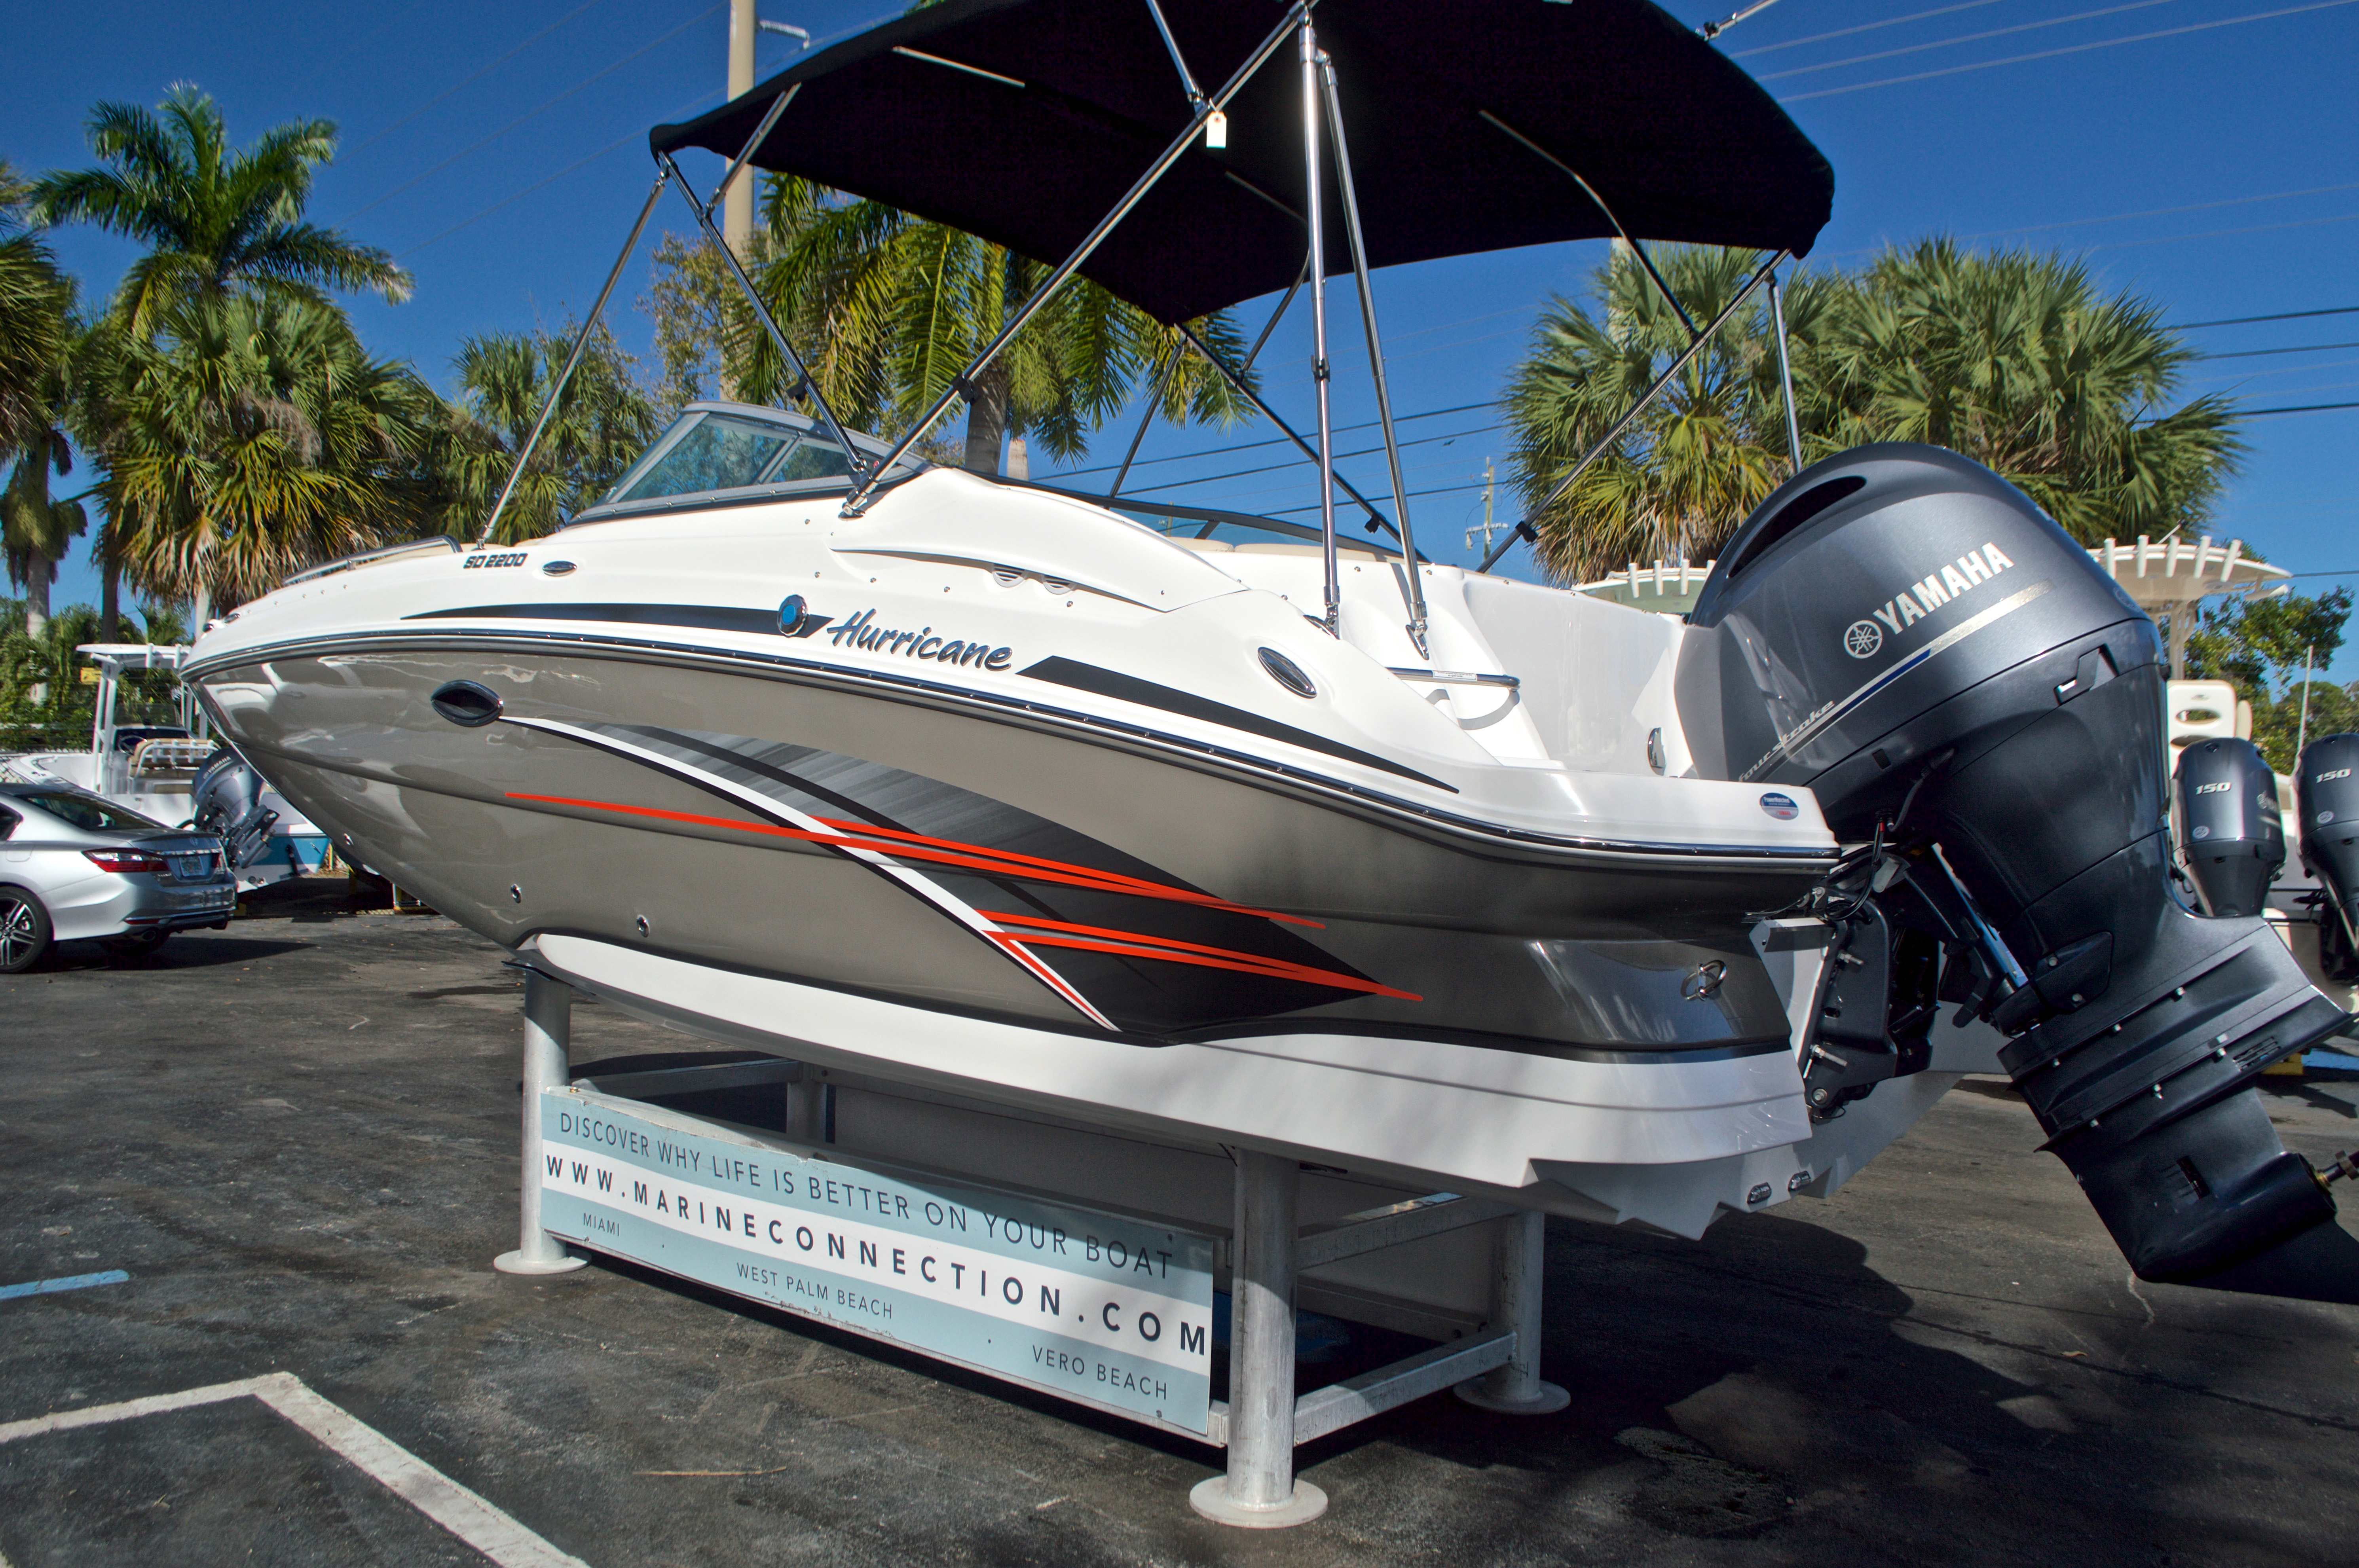 Thumbnail 6 for New 2017 Hurricane SunDeck SD 2200 OB boat for sale in West Palm Beach, FL